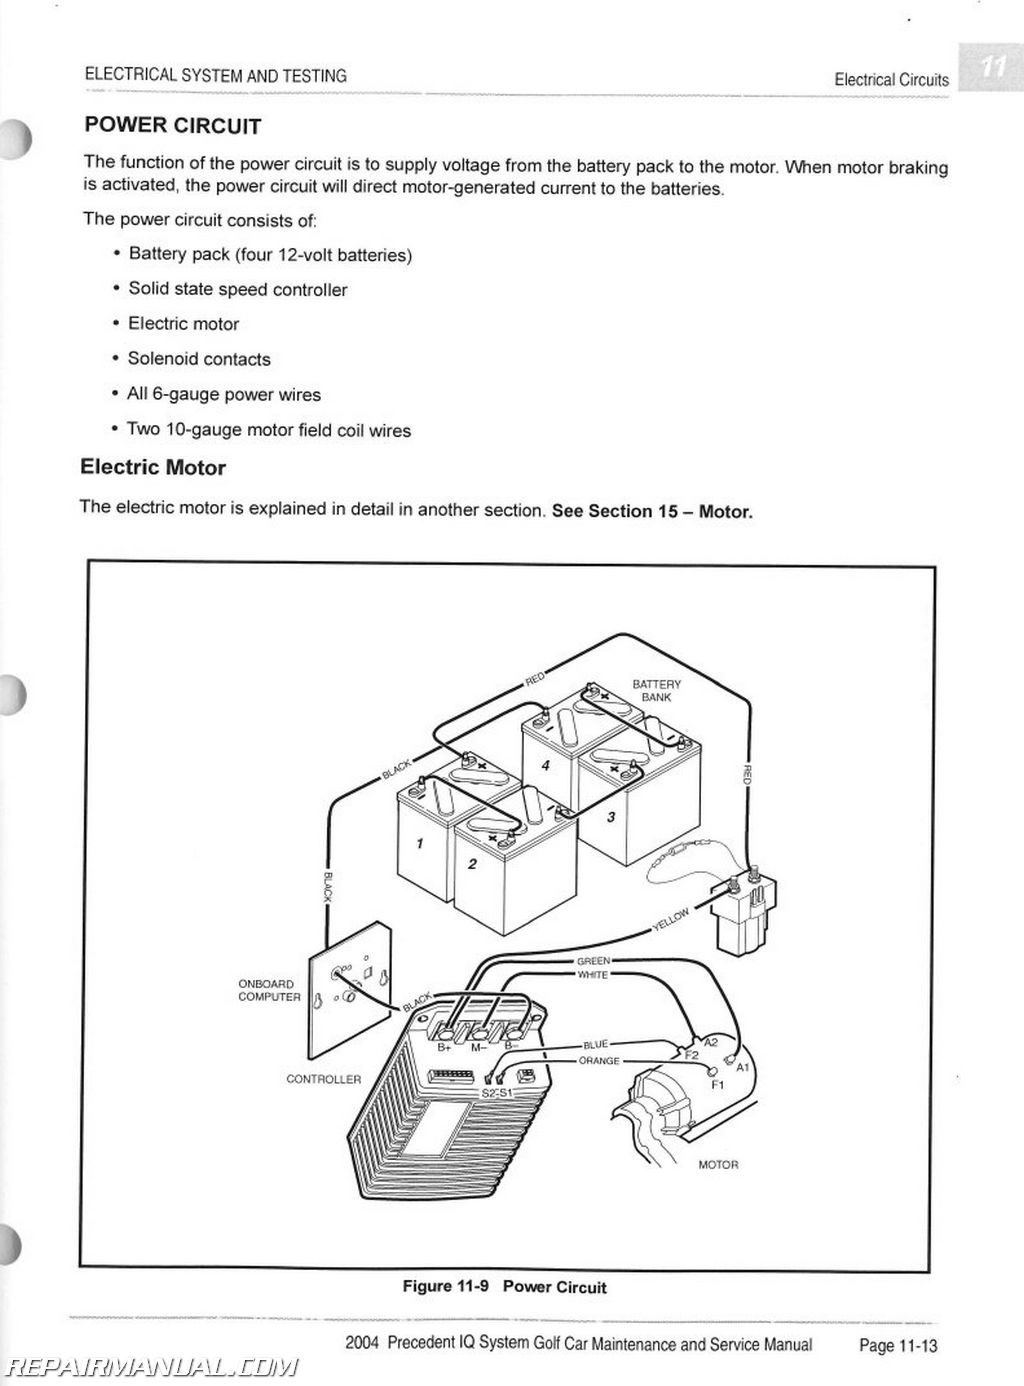 small resolution of wiring diagram for 48 volt 2007 club car ds golf cart 36